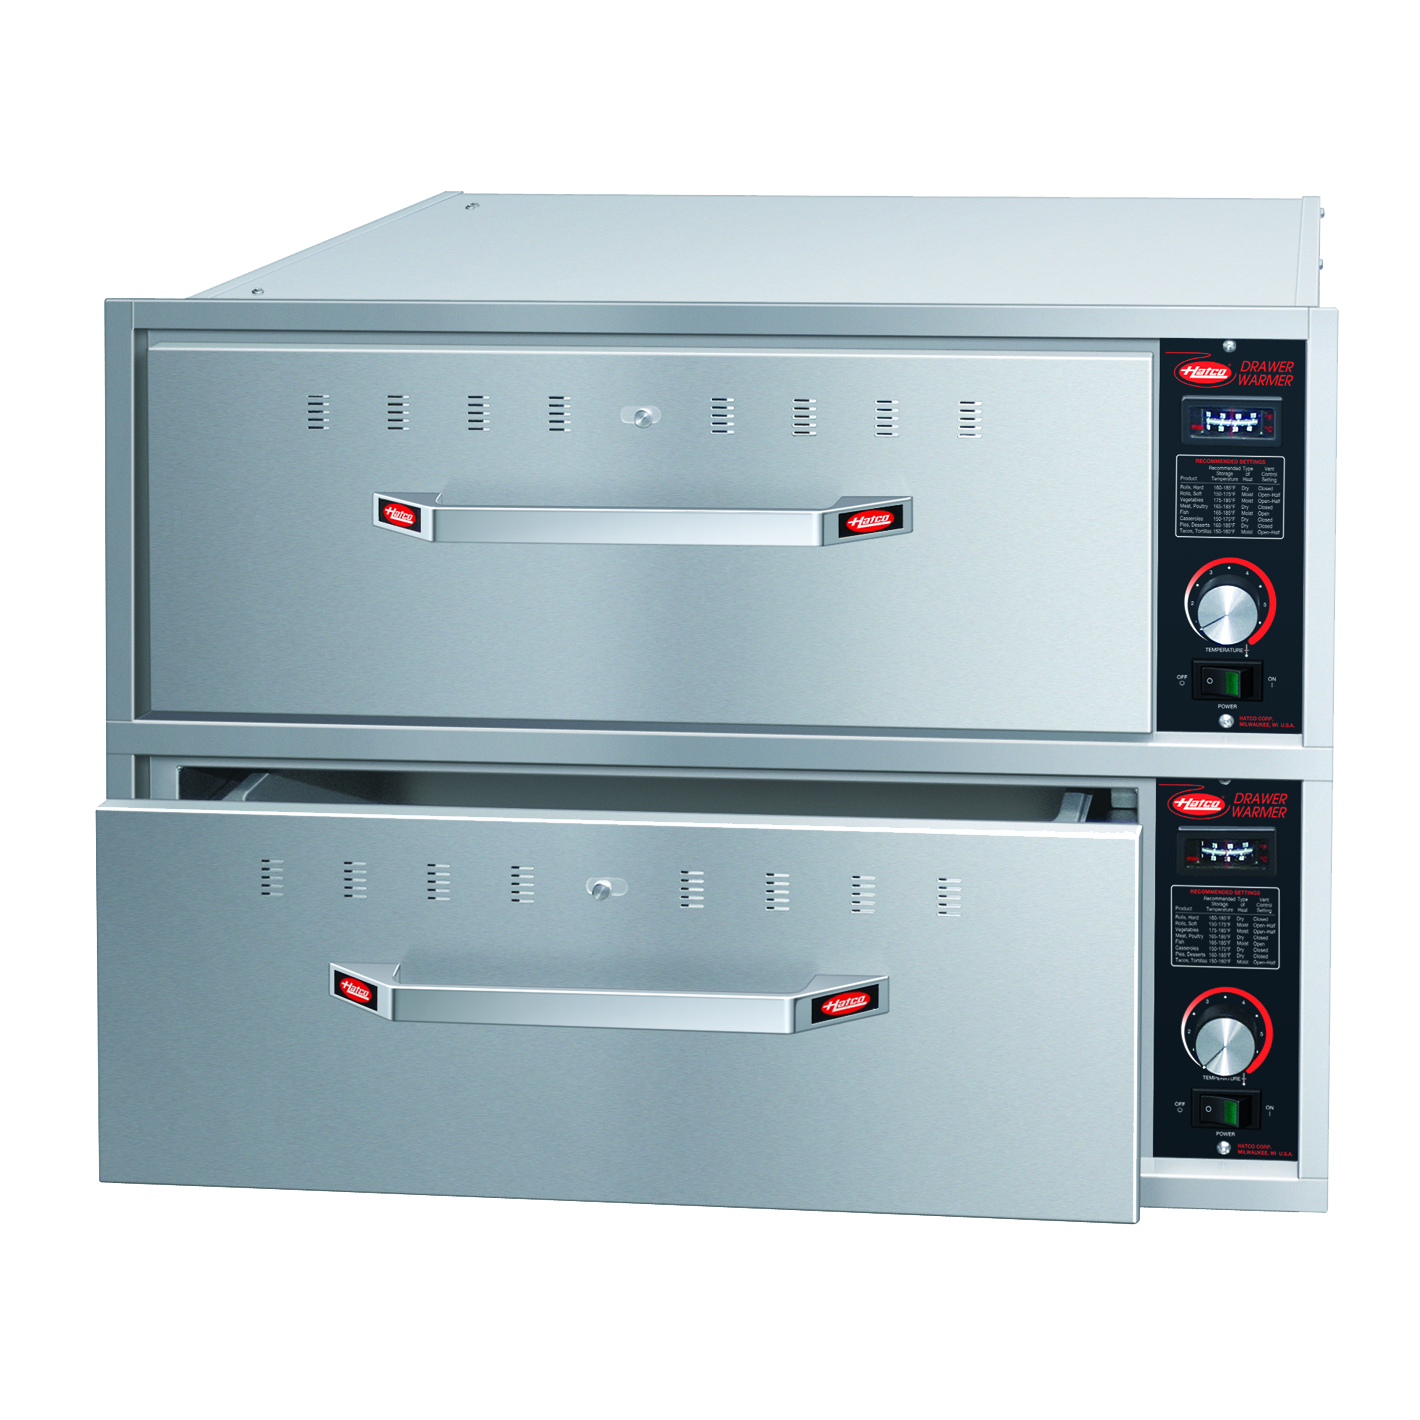 Hatco HDW-2BN warming drawer, built-in